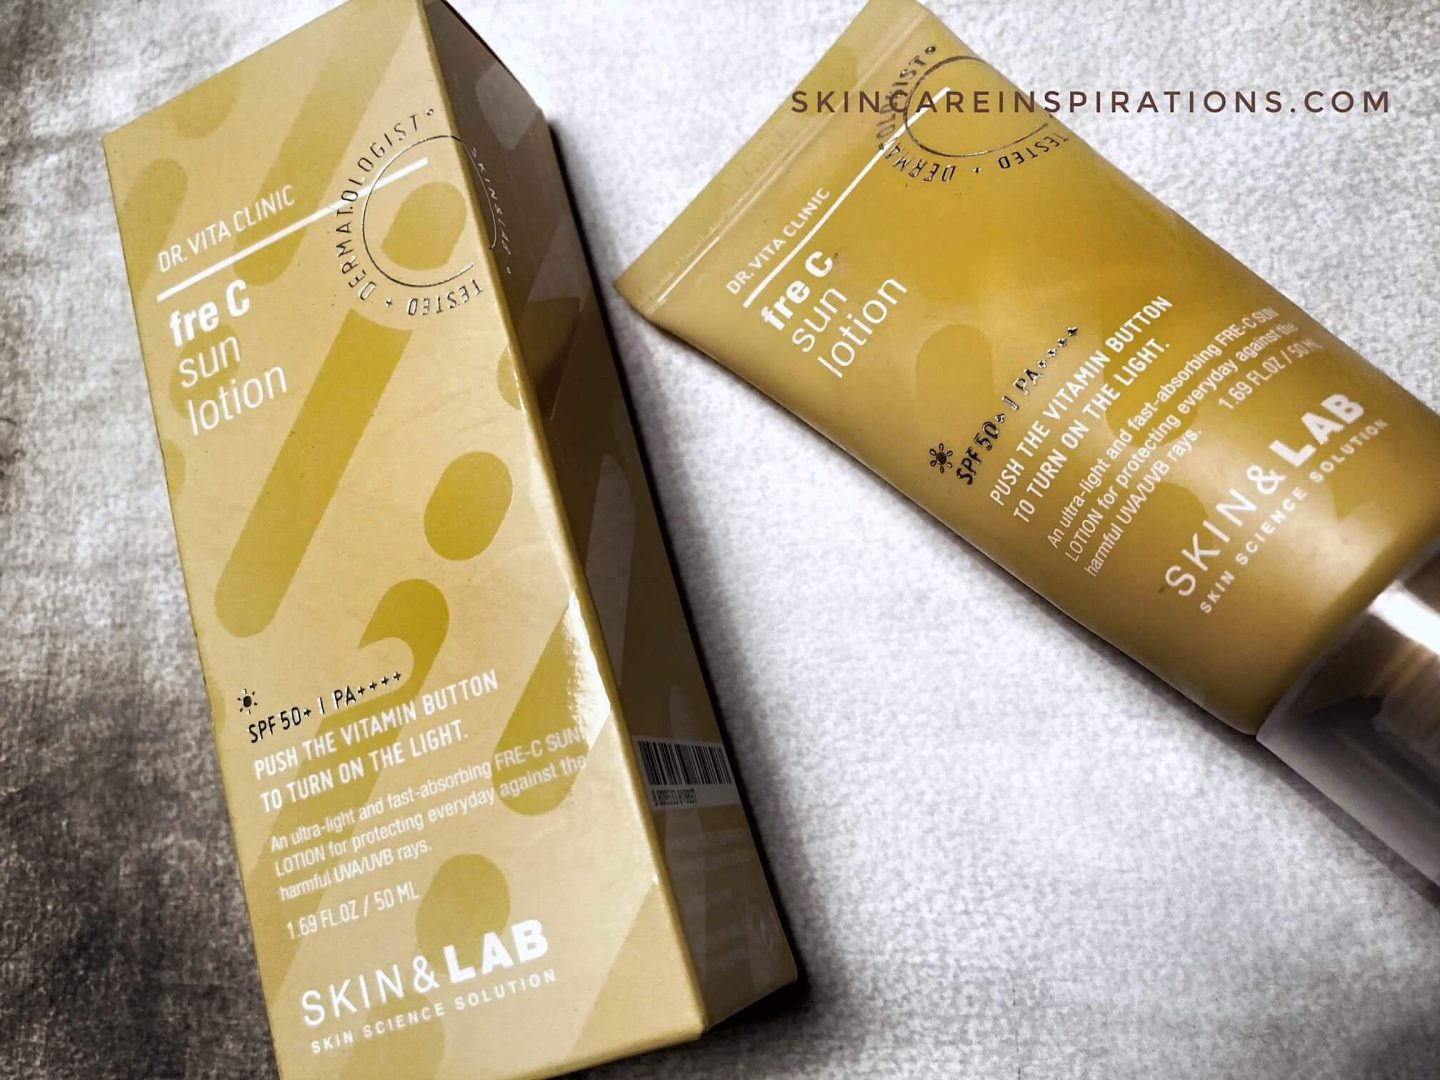 Skin&Lab Fre C Lotion SPF50+ Erfahung